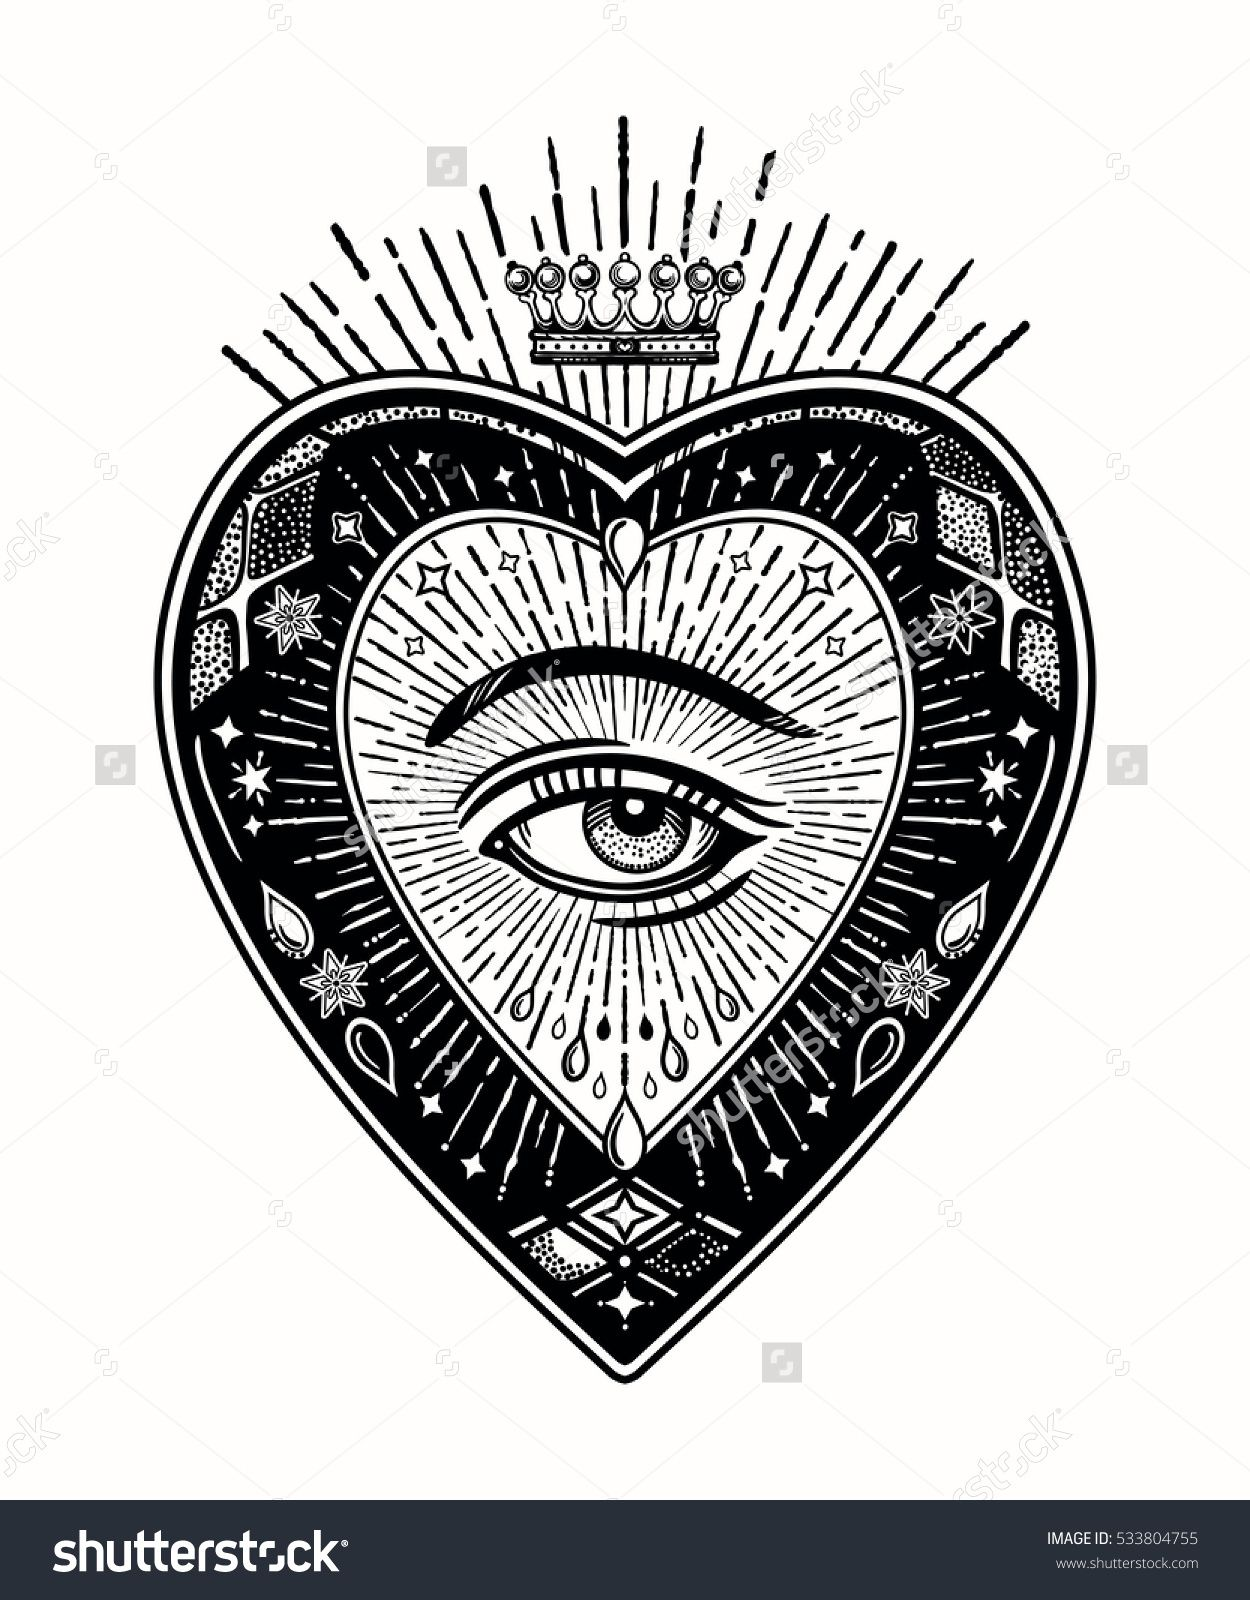 Ornate Mystic Eye Inside The Decorative Heart Vintage Alchemy And Gothic Style Inspired Art